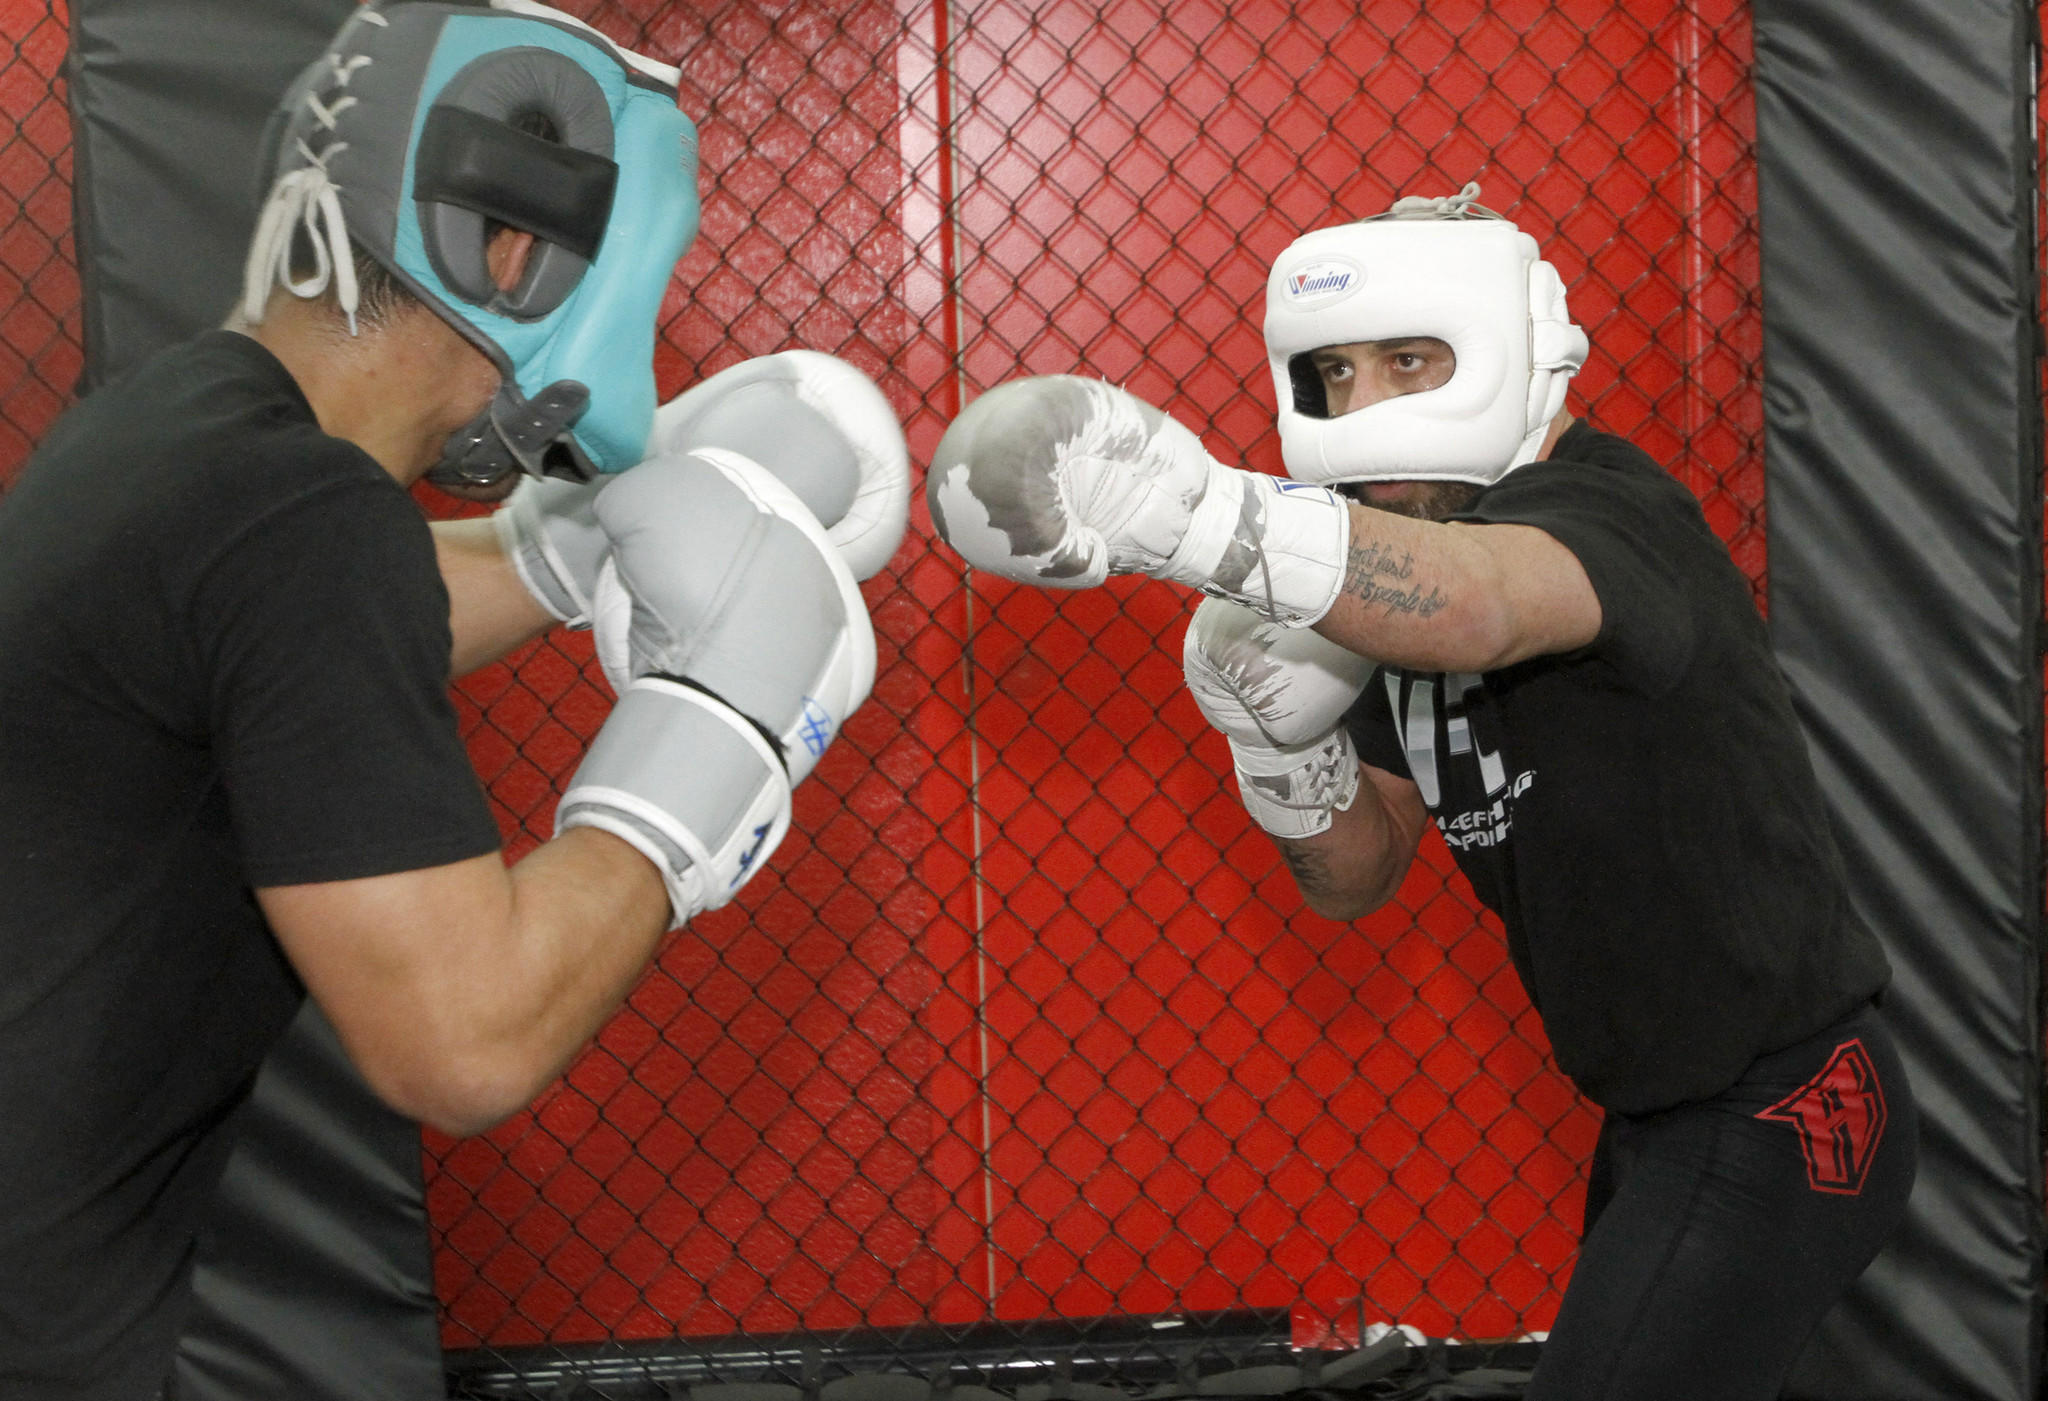 Manny Gamburyan, right, trains for his upcoming fight with sparring partner Alfred Khashakyan, left, at the Glendale Fighting Club in Glendale on Thursday, Dec. 19, 2013.